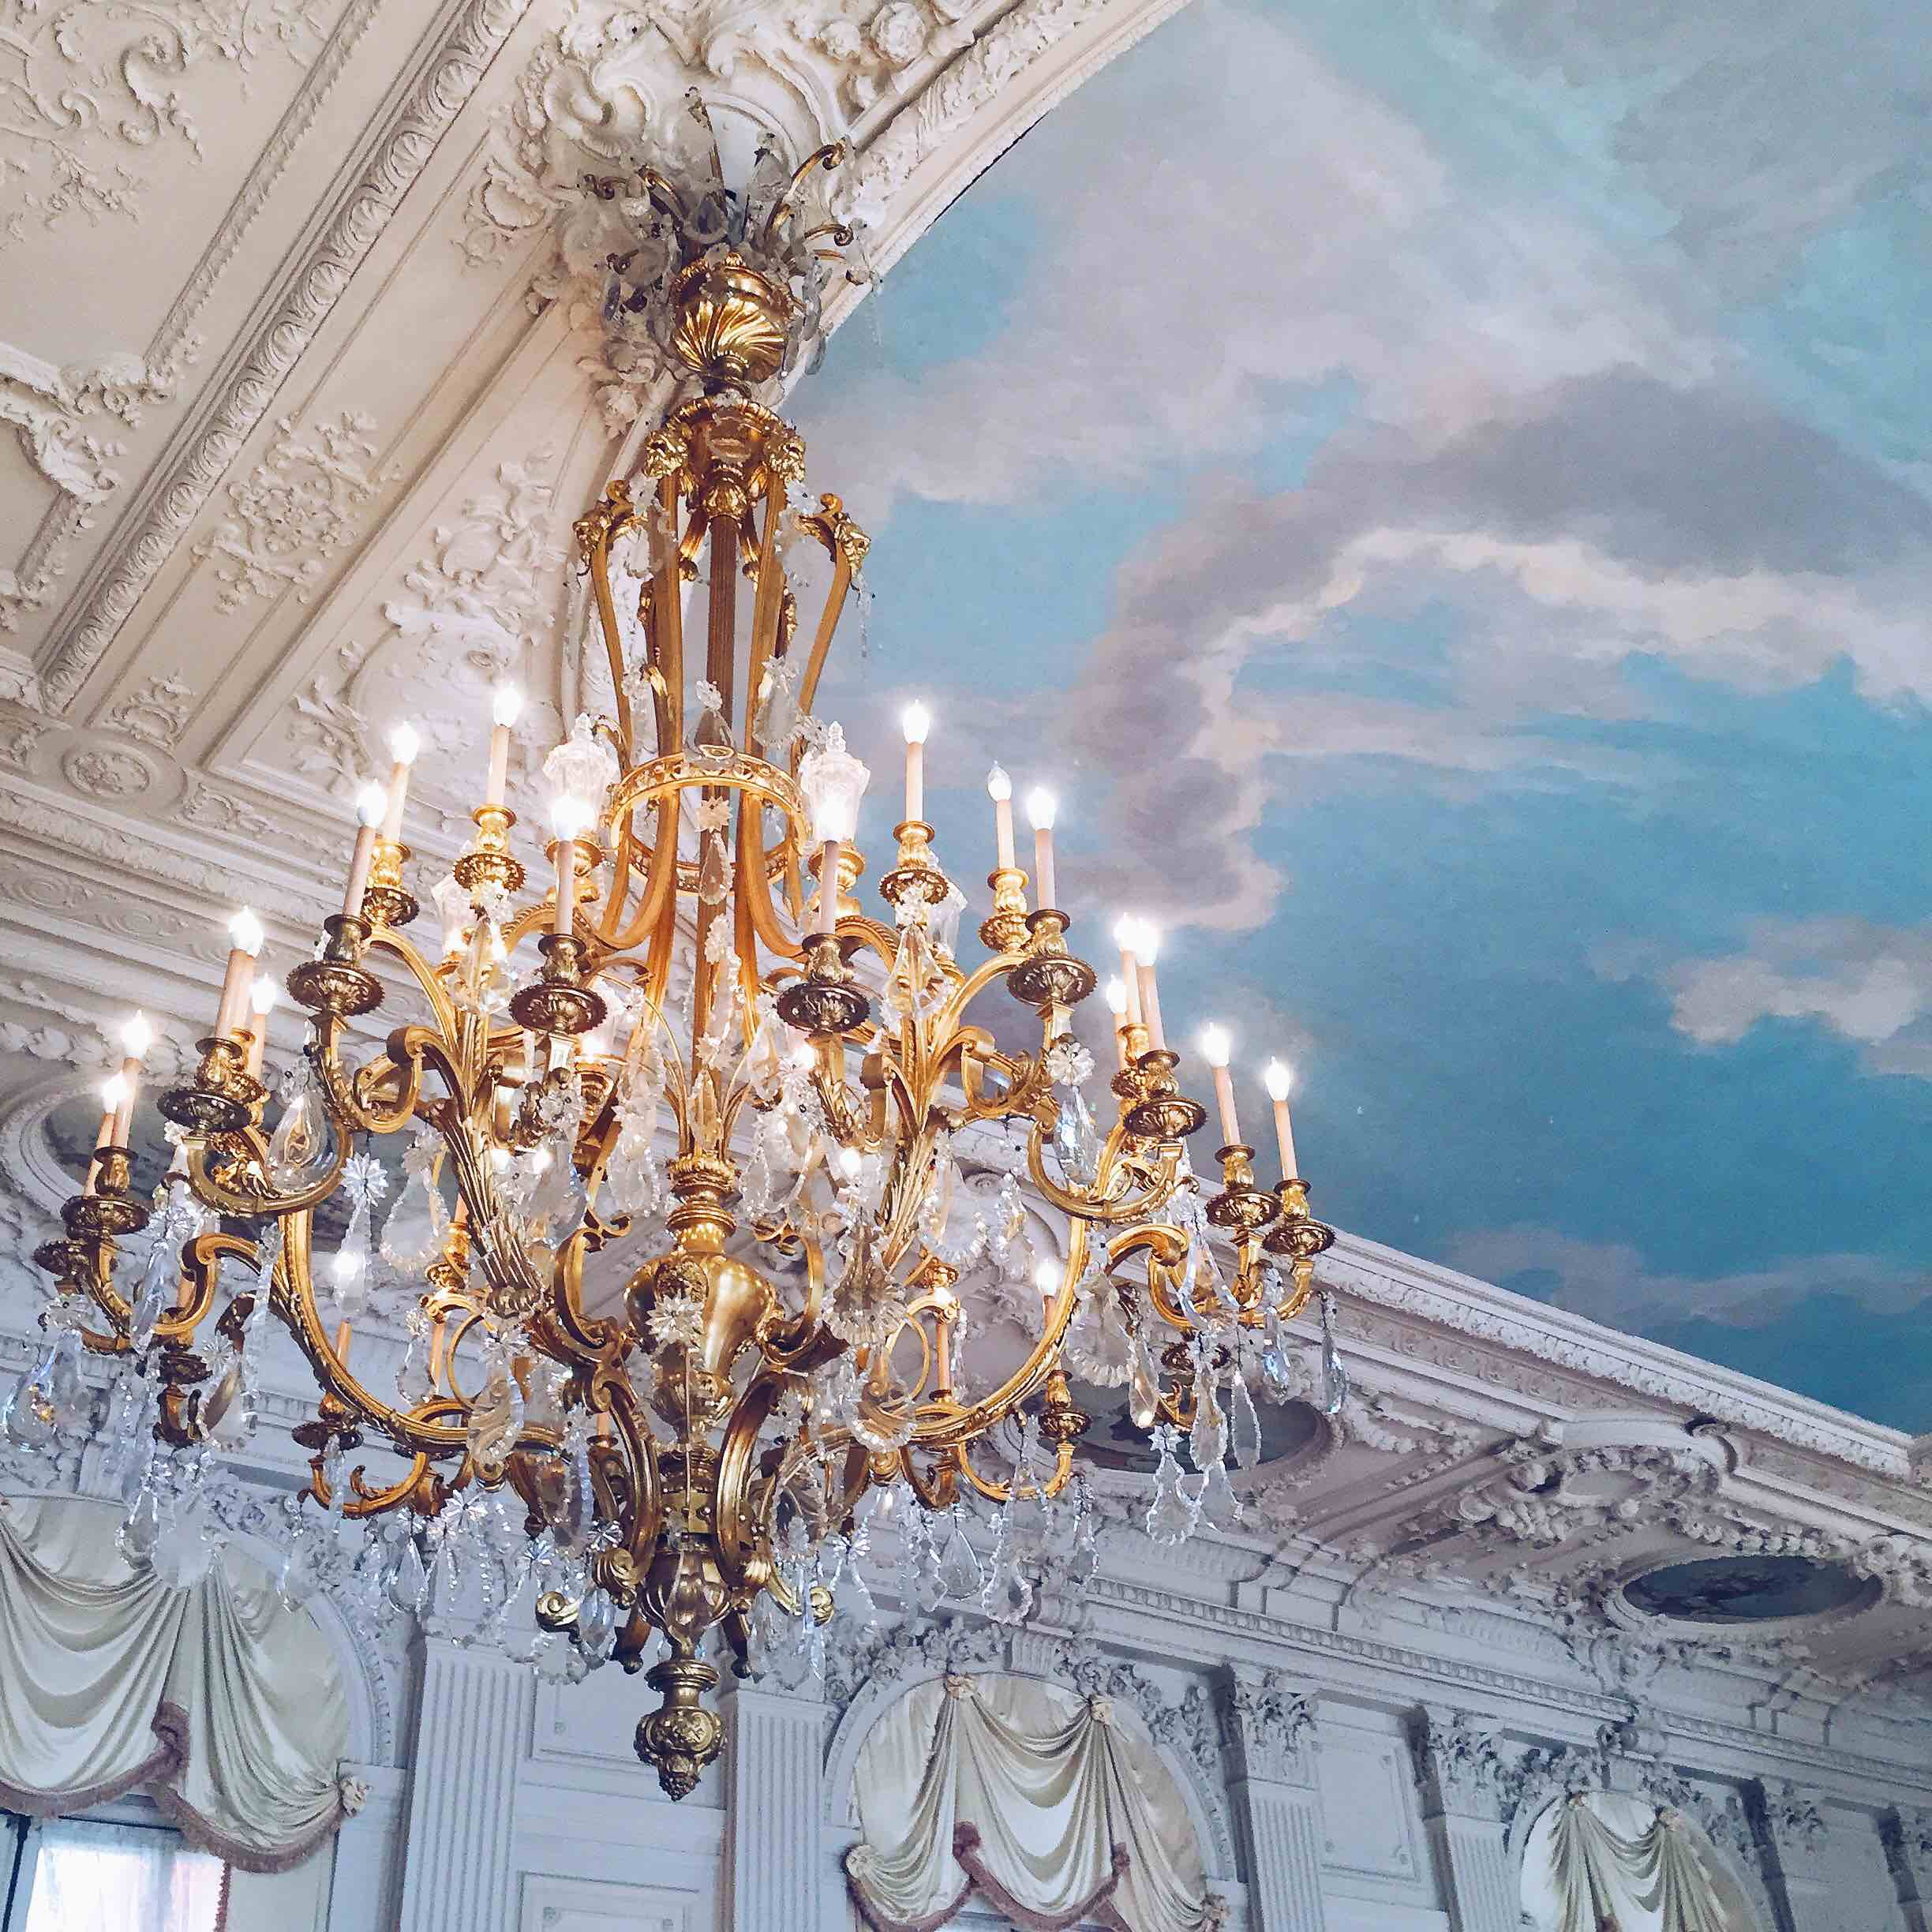 The Rosecliff mansion in Newport, Rhode Island is a must-do during the holiday season